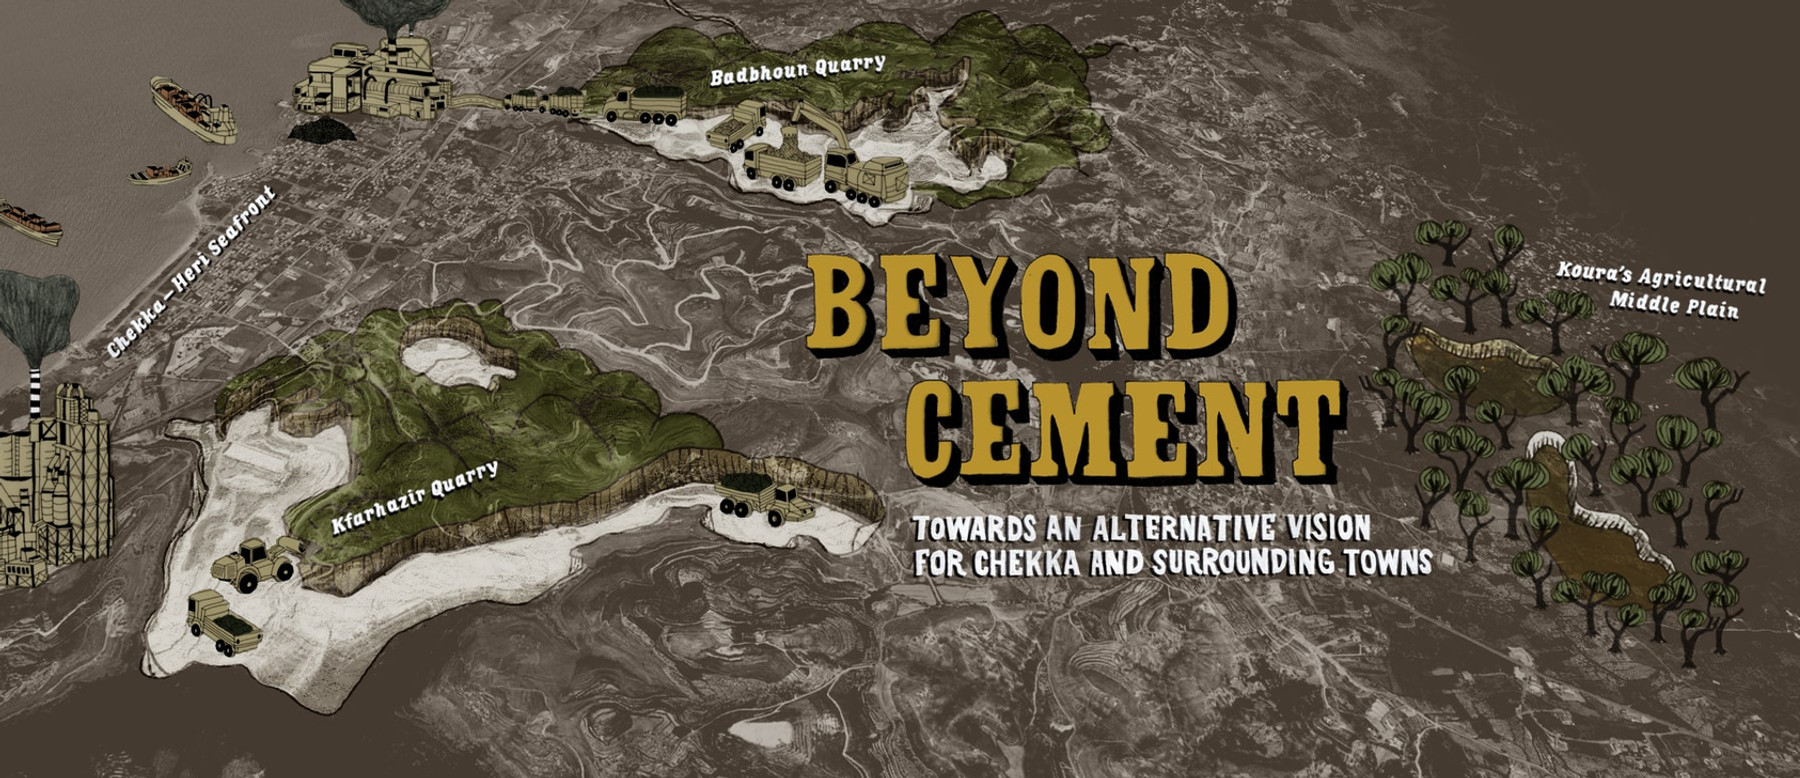 Beyond Cement Competition